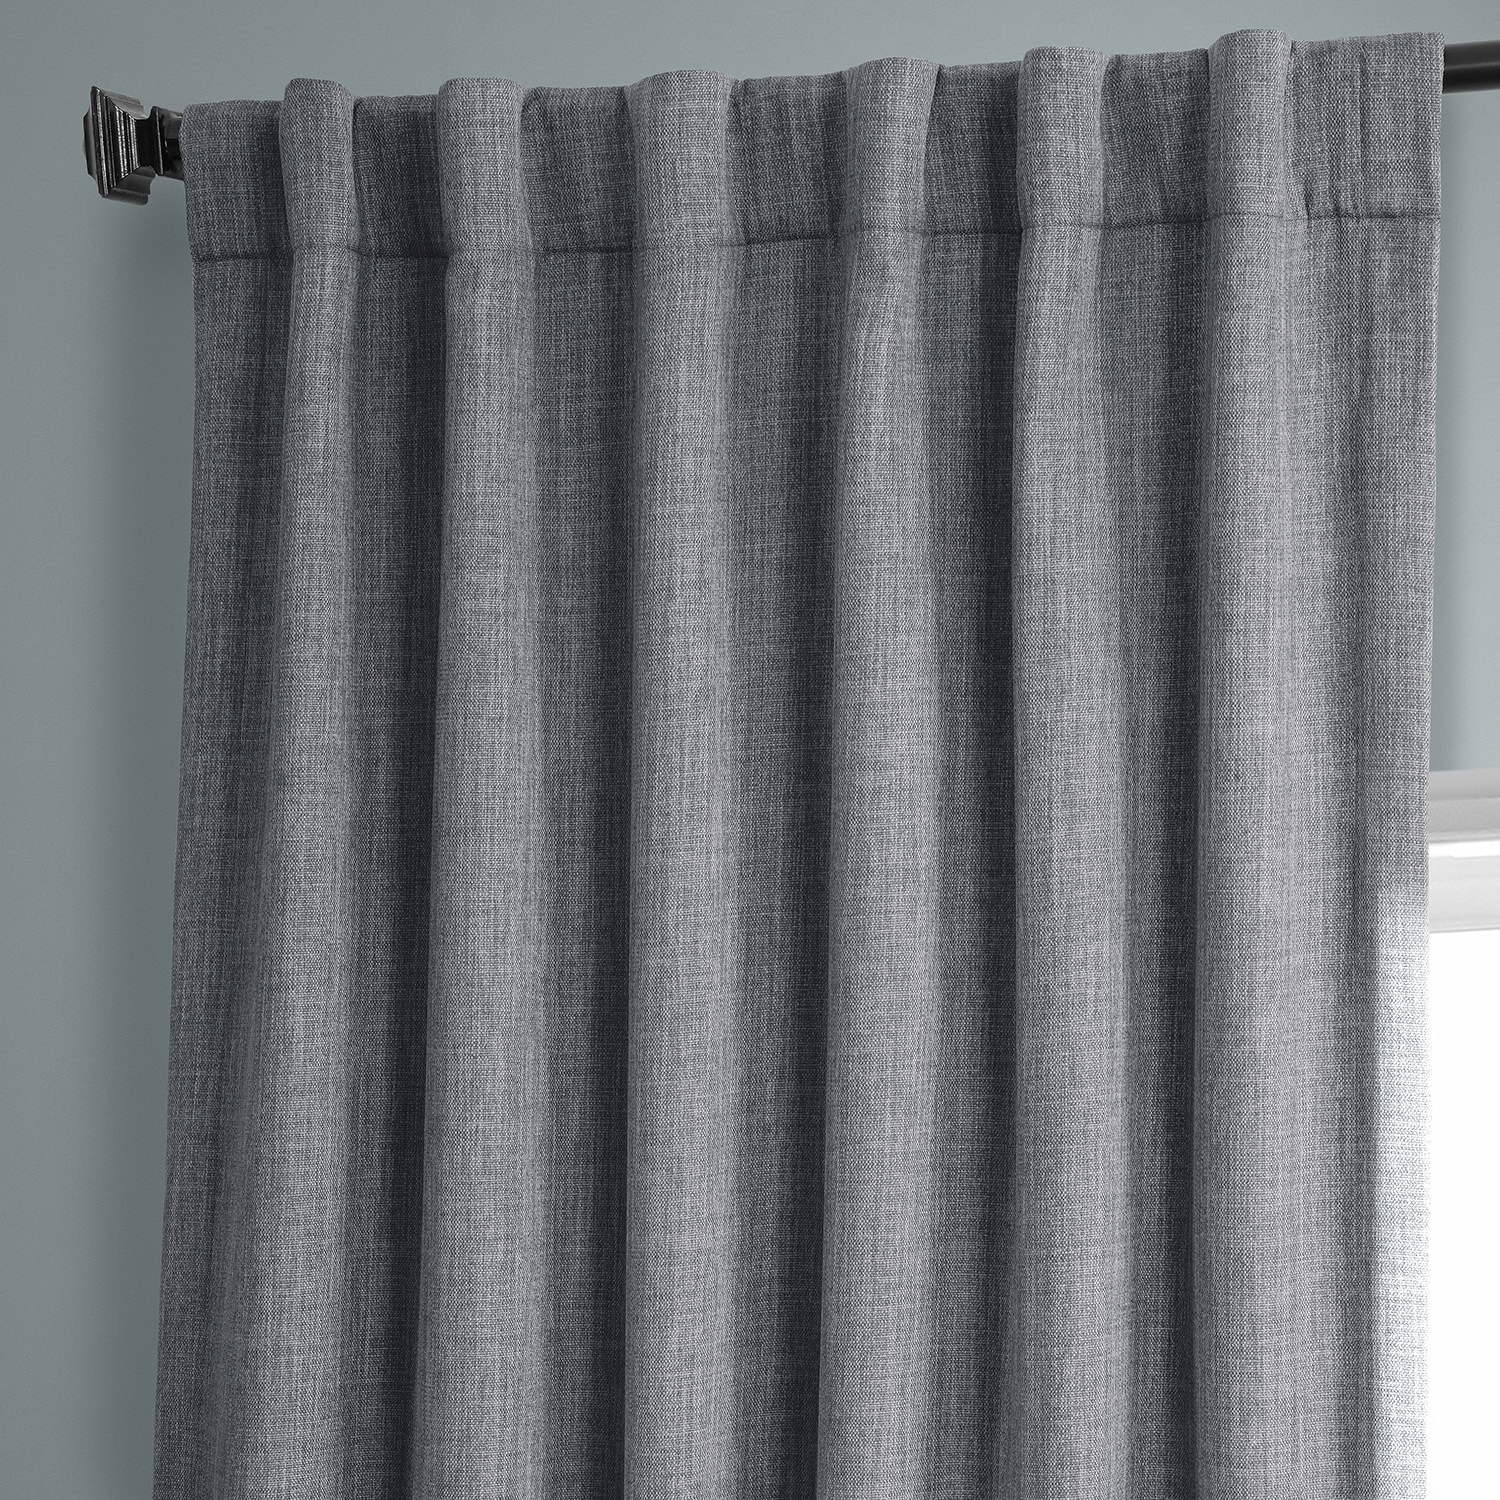 Blazer Grey Faux Linen Blackout Room Darkening Curtain